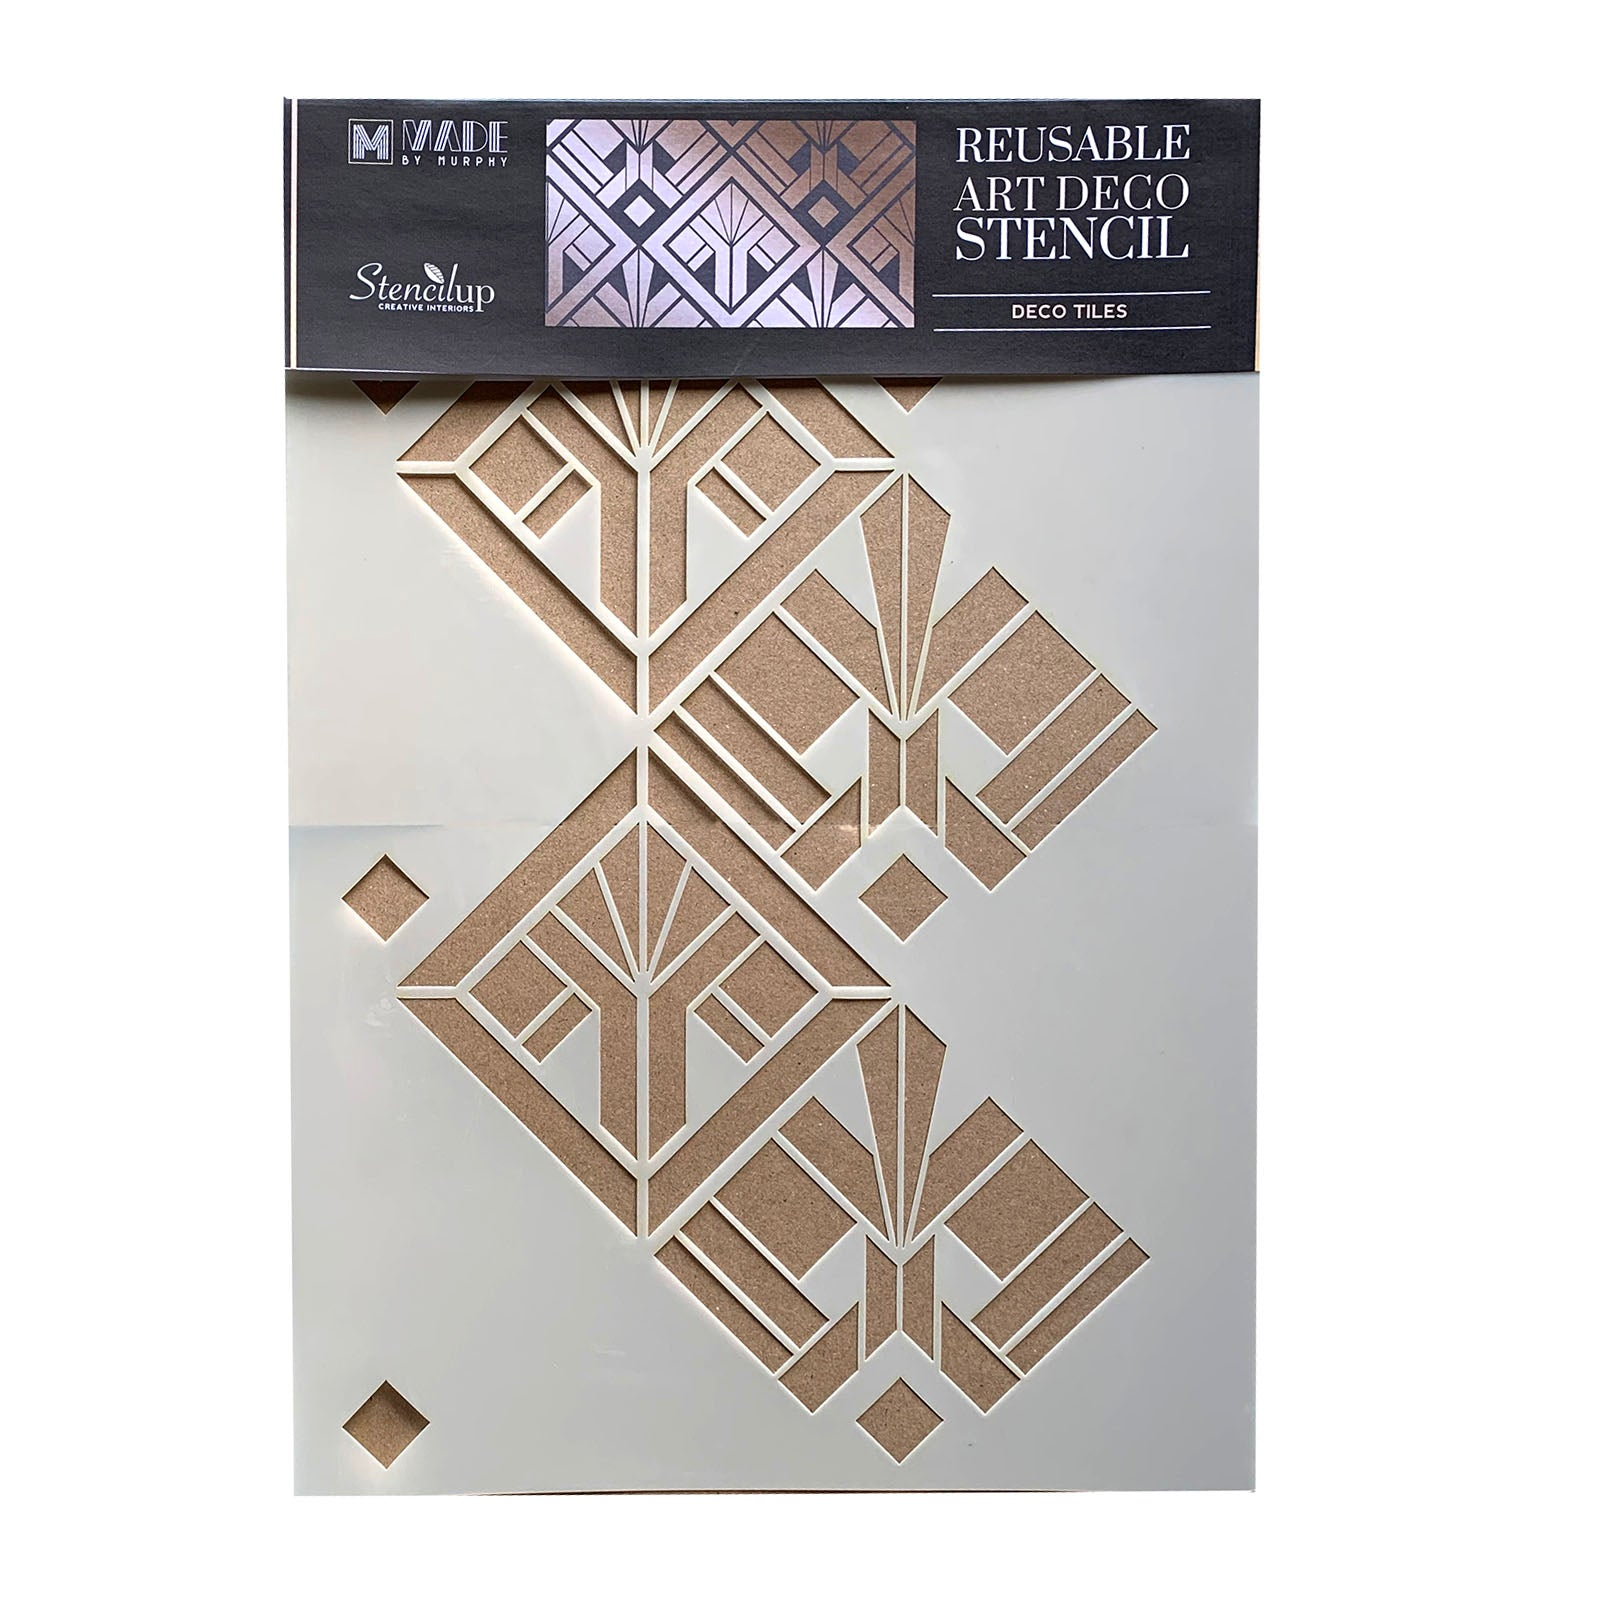 art deco tile stencil - stencil.co.uk